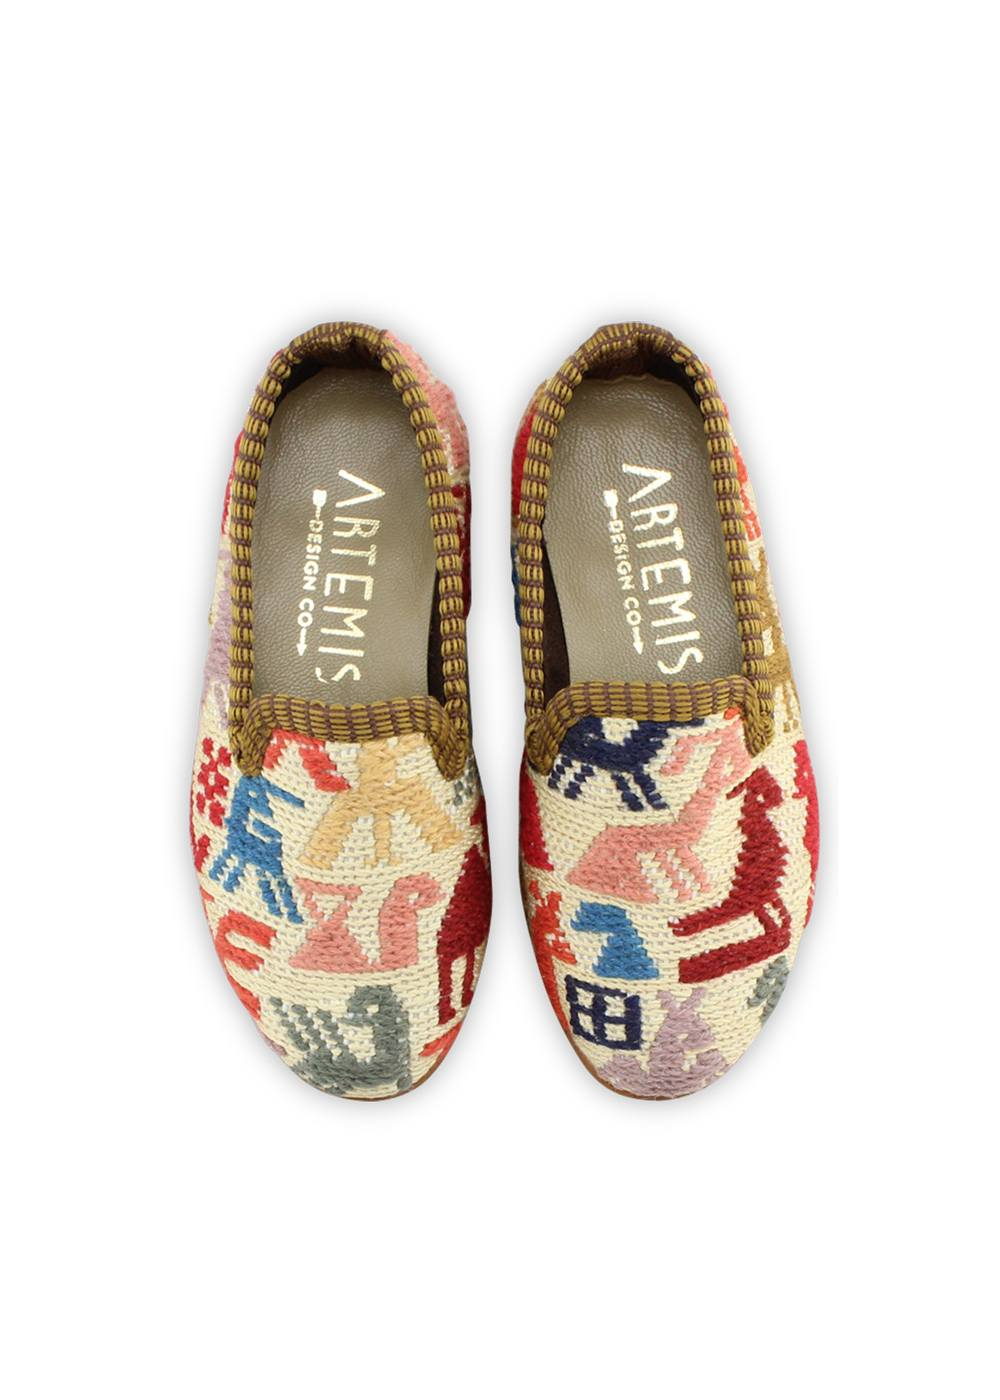 Archived Children's Shoes - Children's Sumak Kilim Loafers - Size 25 (US Children's 8.5-9)